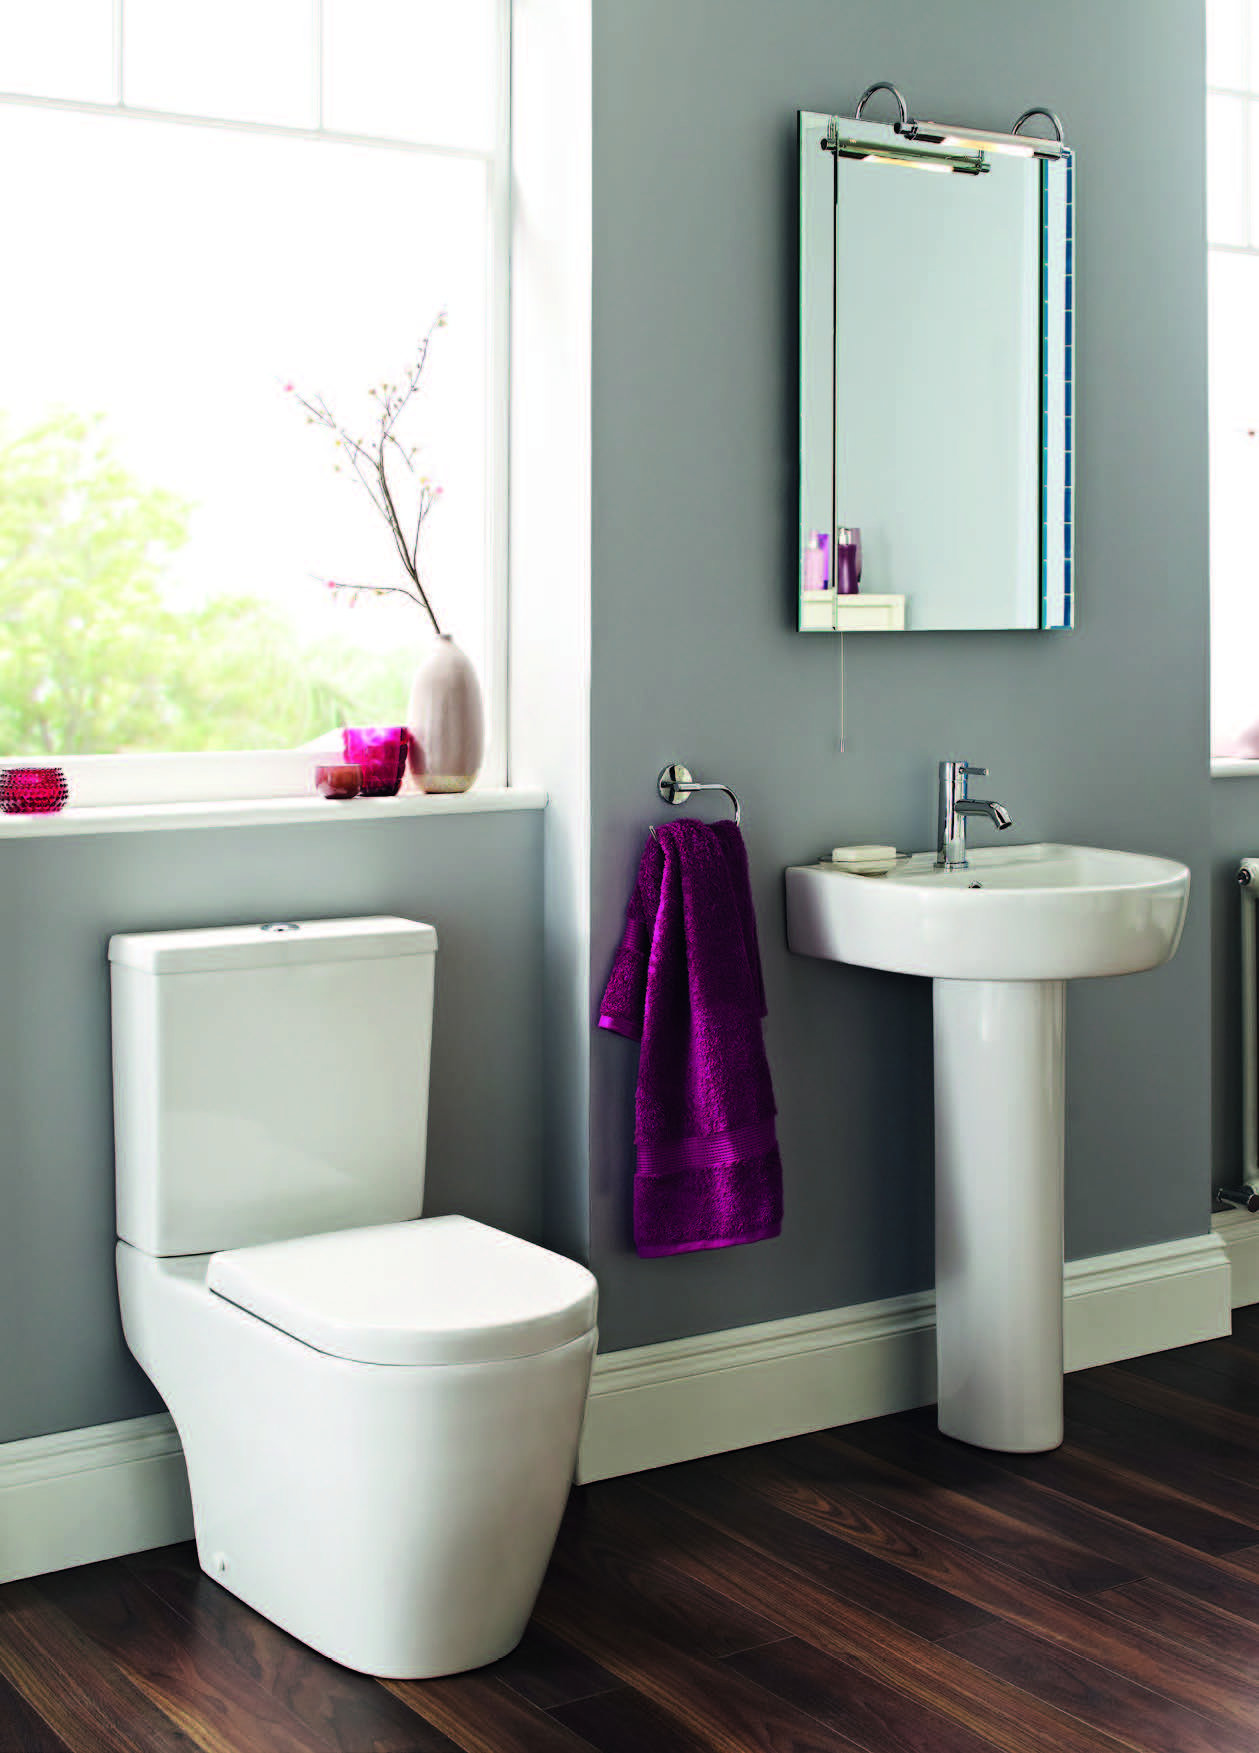 Wholesale Domestic Bathroom Blog - Toilet Buying Guide